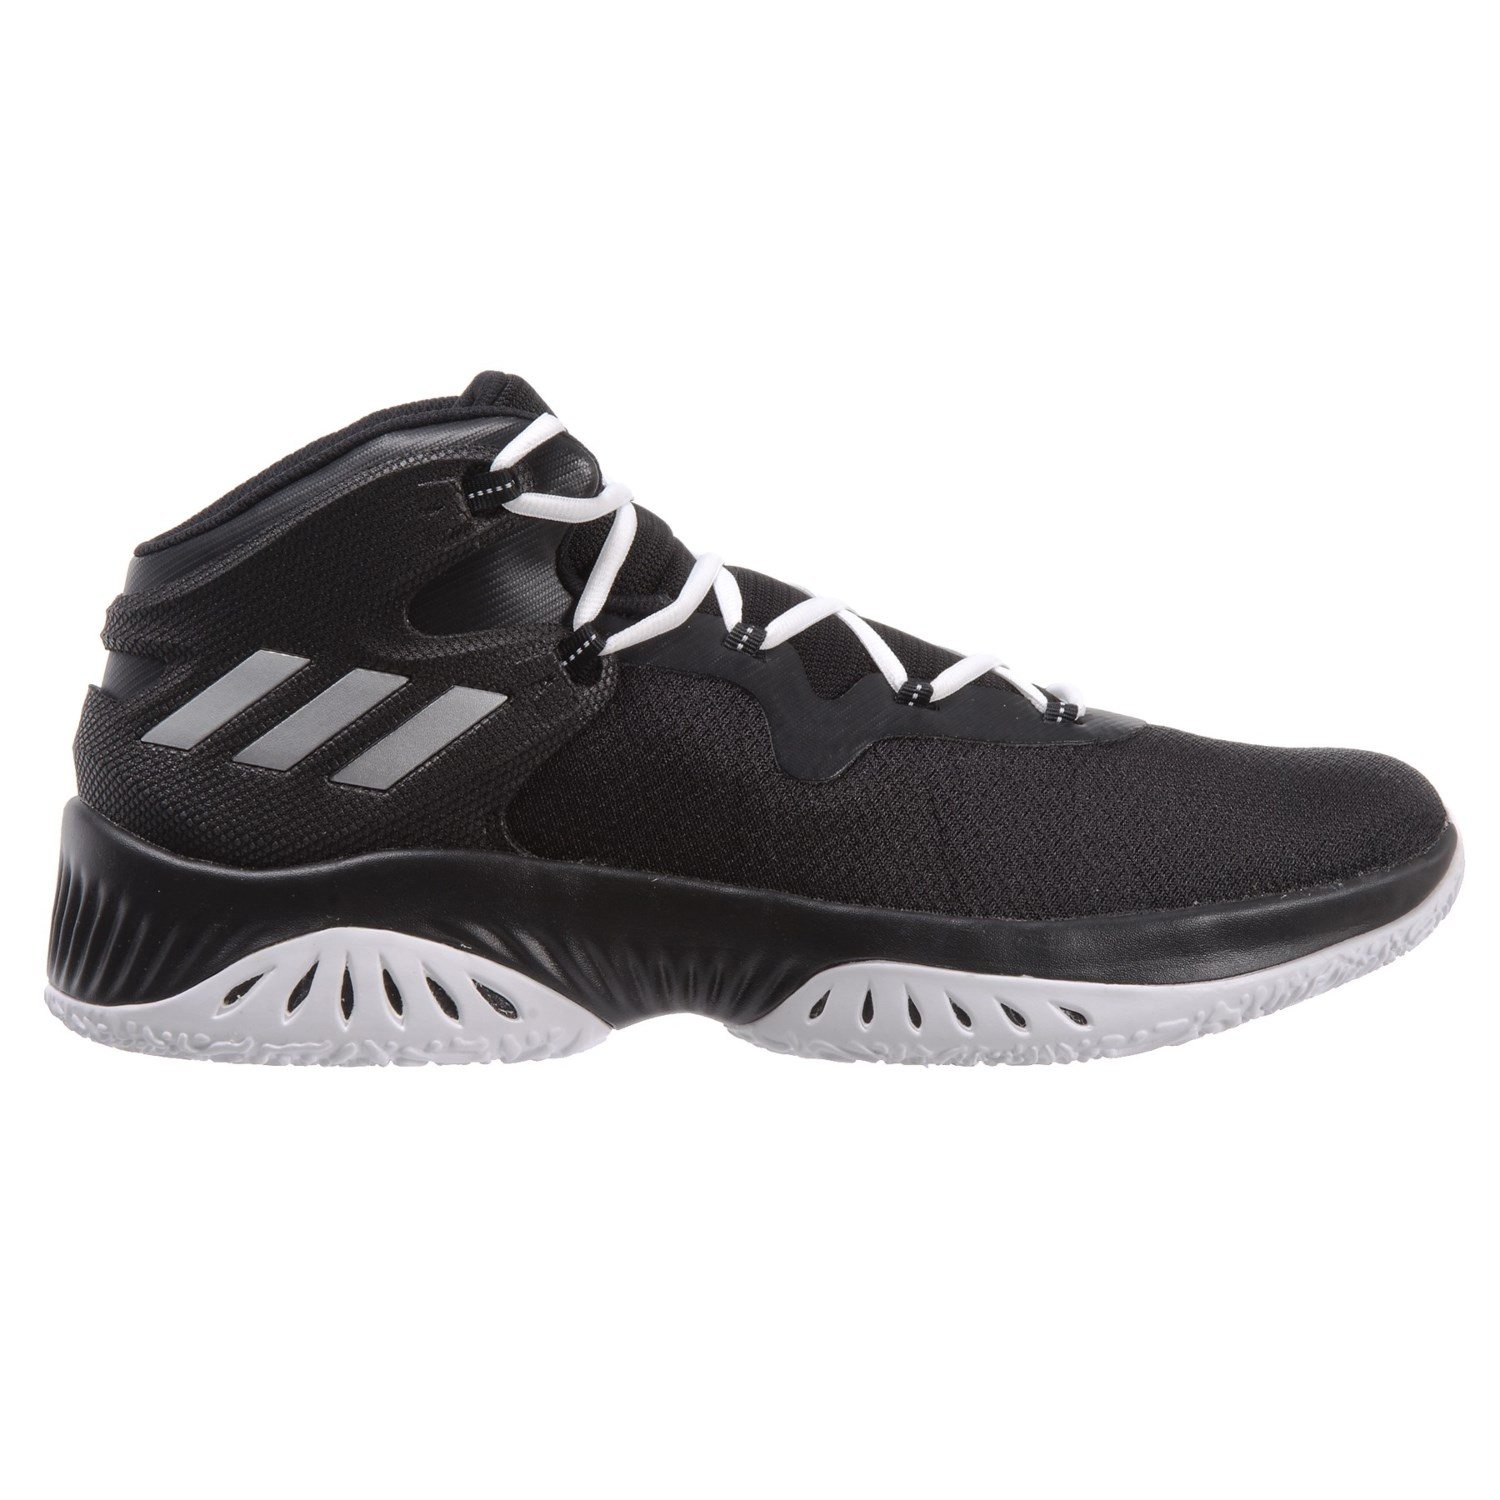 4b052ec118a58 adidas Explosive BOUNCE Basketball Shoes (For Men) - Save 32%